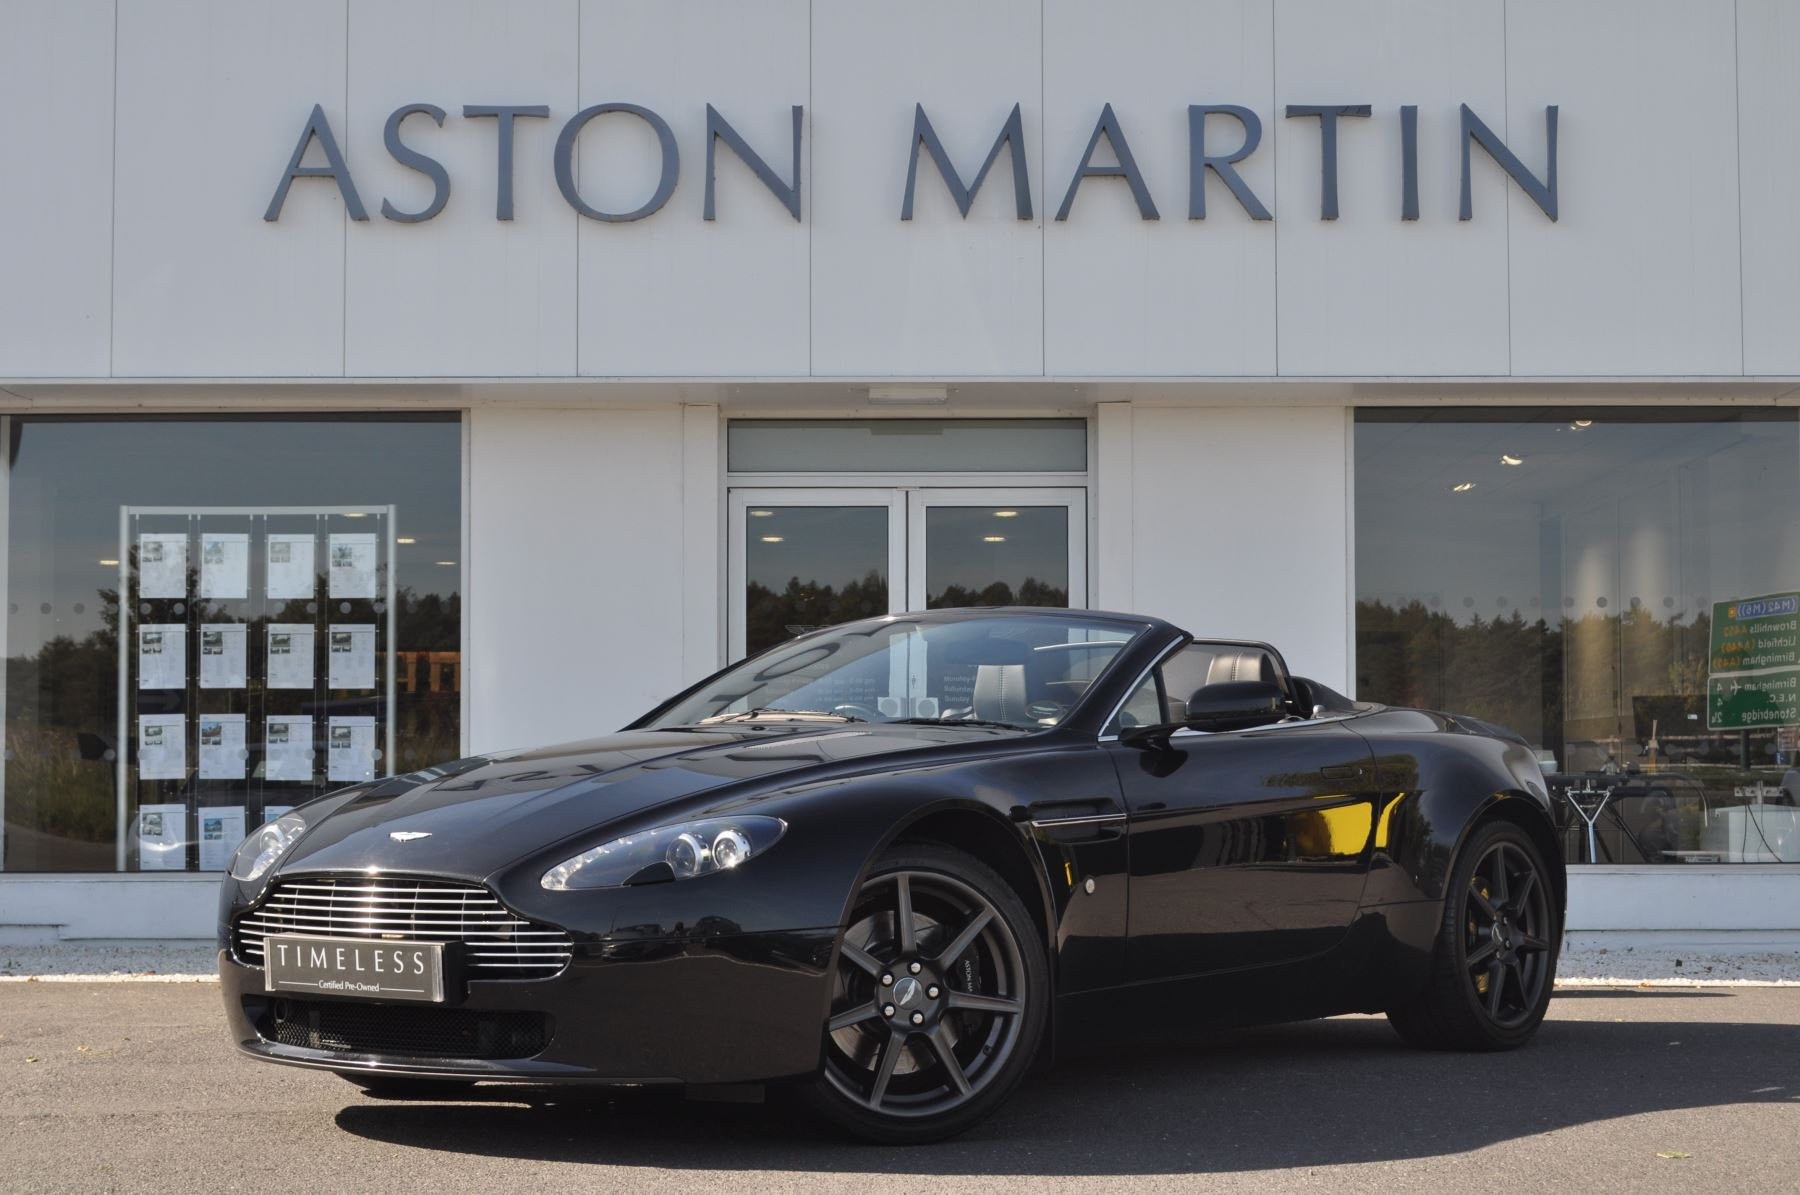 Used Aston Martin V Vantage Roadster Cars For Sale Grange - Used aston martin v8 vantage